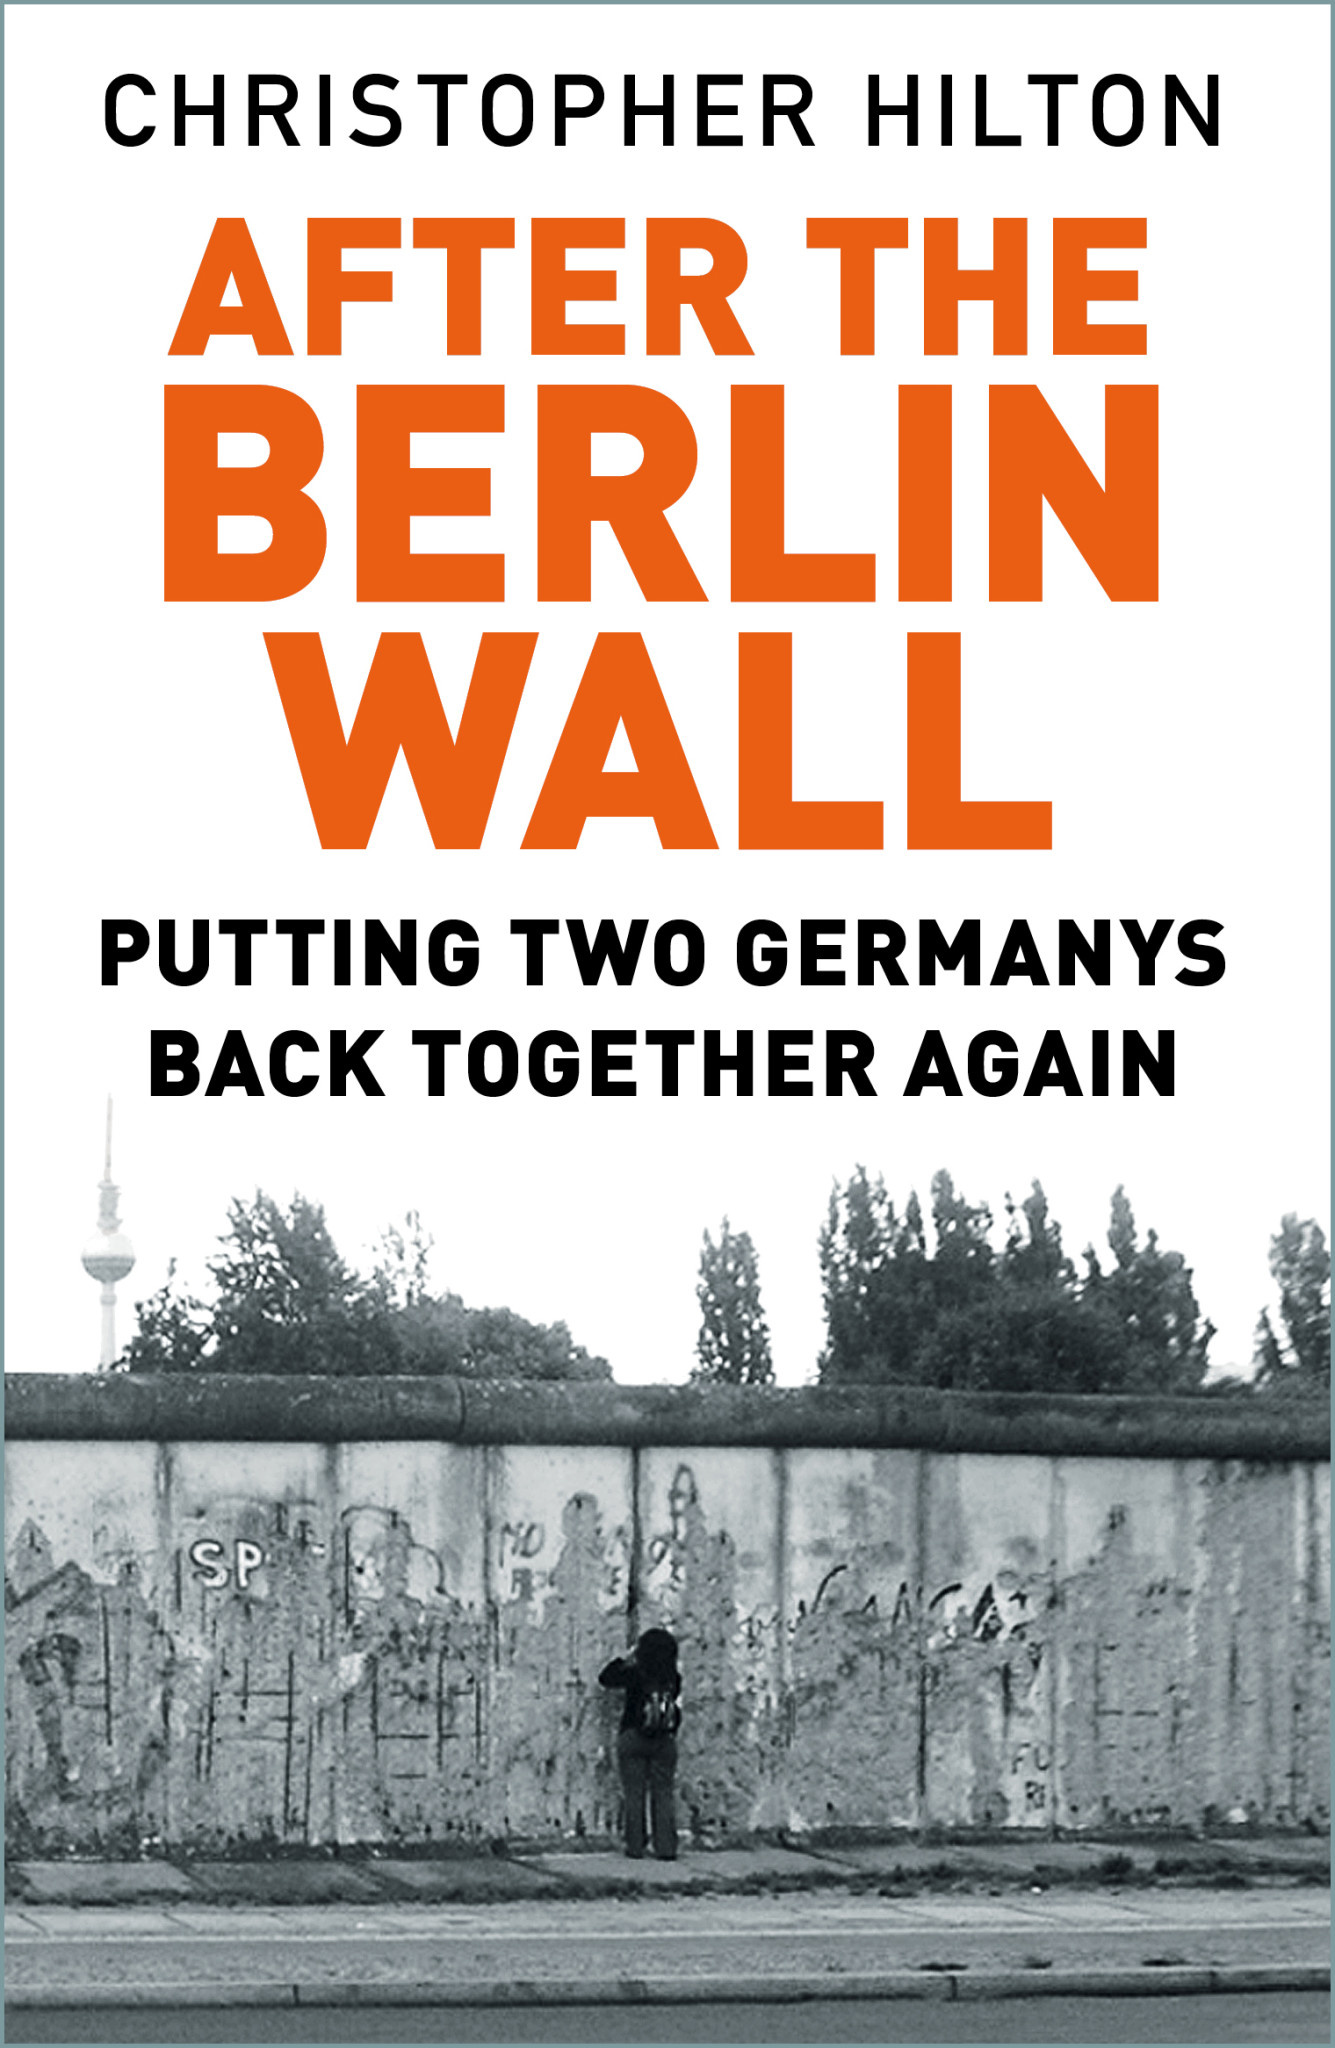 After The Berlin Wall Putting Two Germanys Back Together Again Author Christopher Hilton